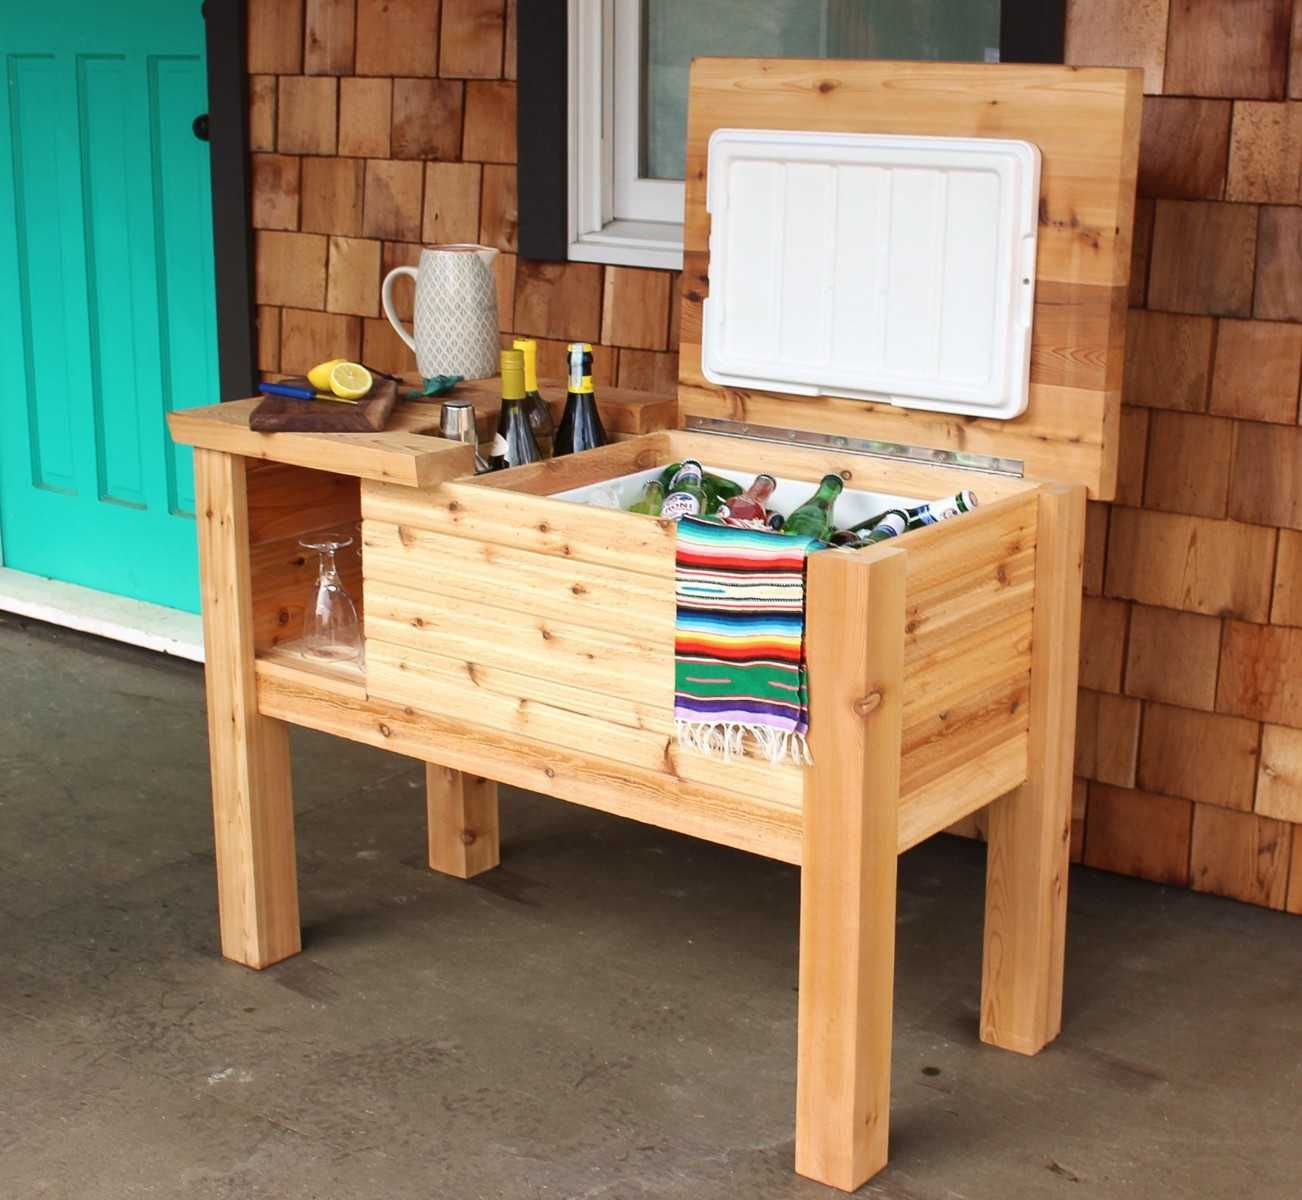 Free Cedar Cooler Storage Project Plans Real Cedar In 2020 Diy Projects Plans Cooler Stand Diy Cooler